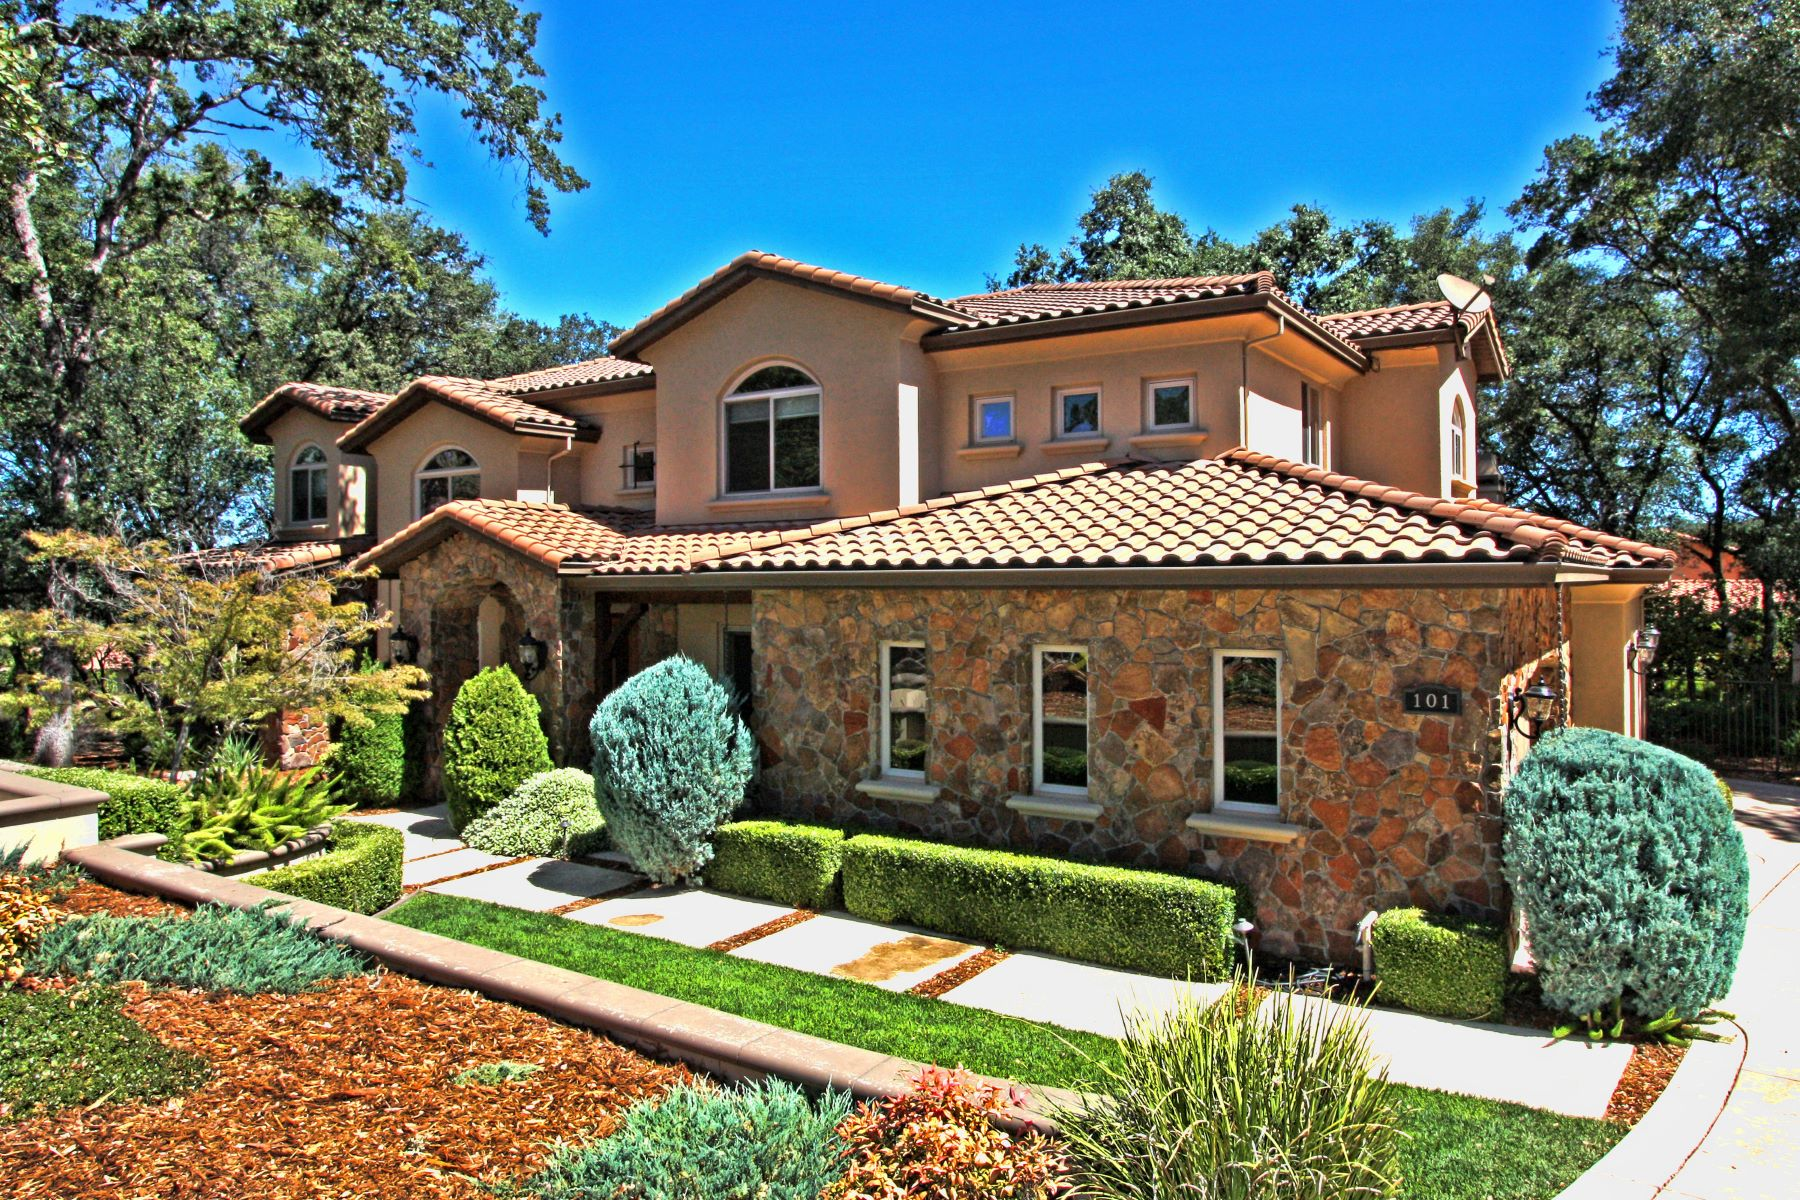 Single Family Home for Sale at 101 Martini Court El Dorado Hills, California 95762 United States